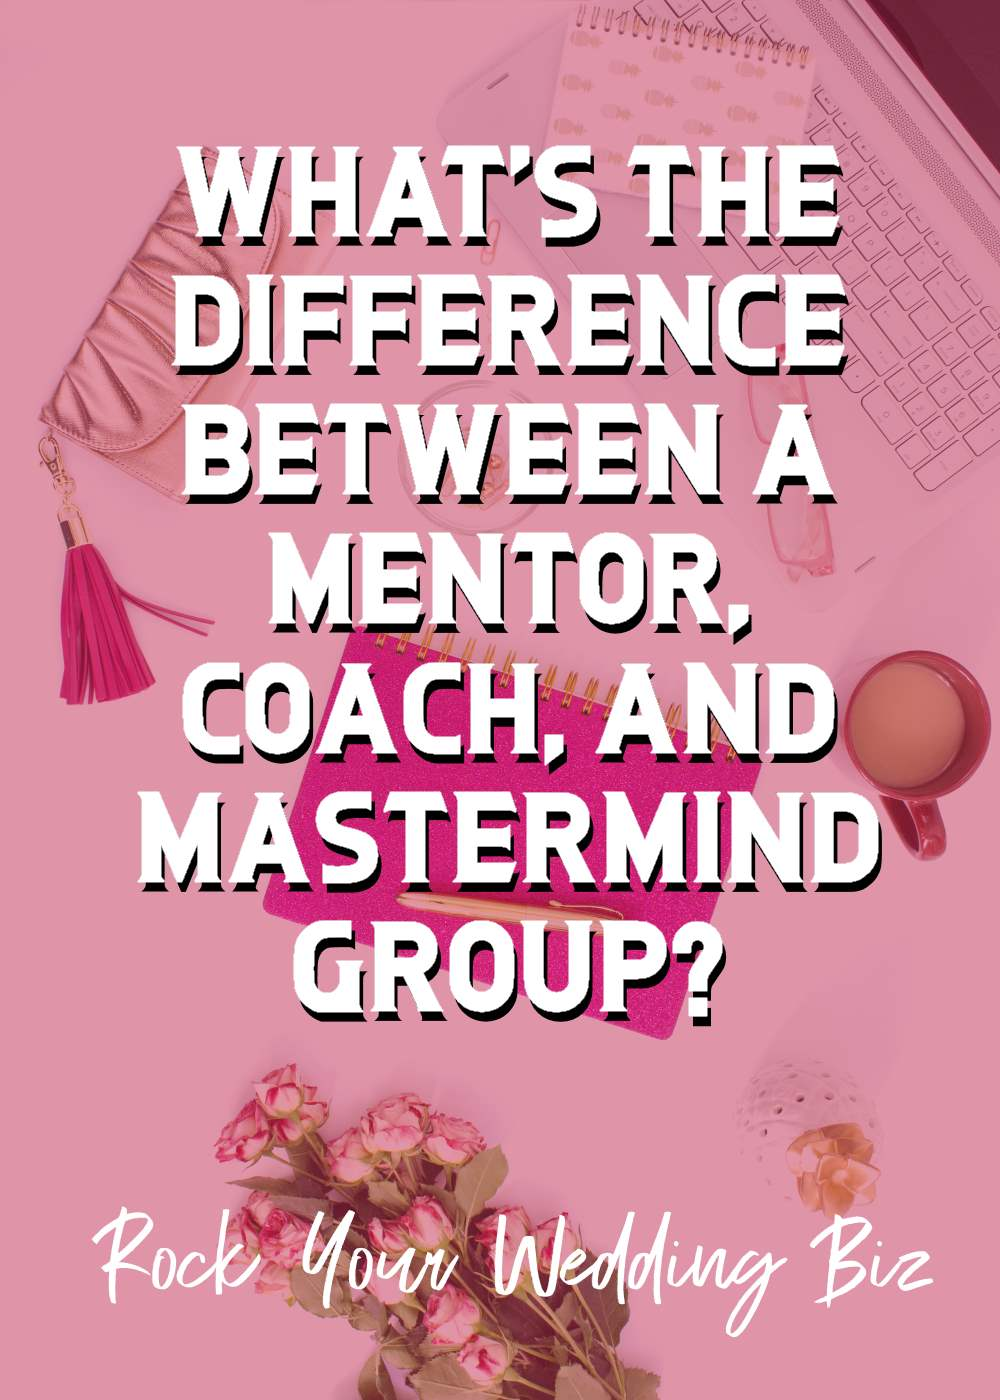 Episode 19 - Mentoring vs Coaching vs Masterminds